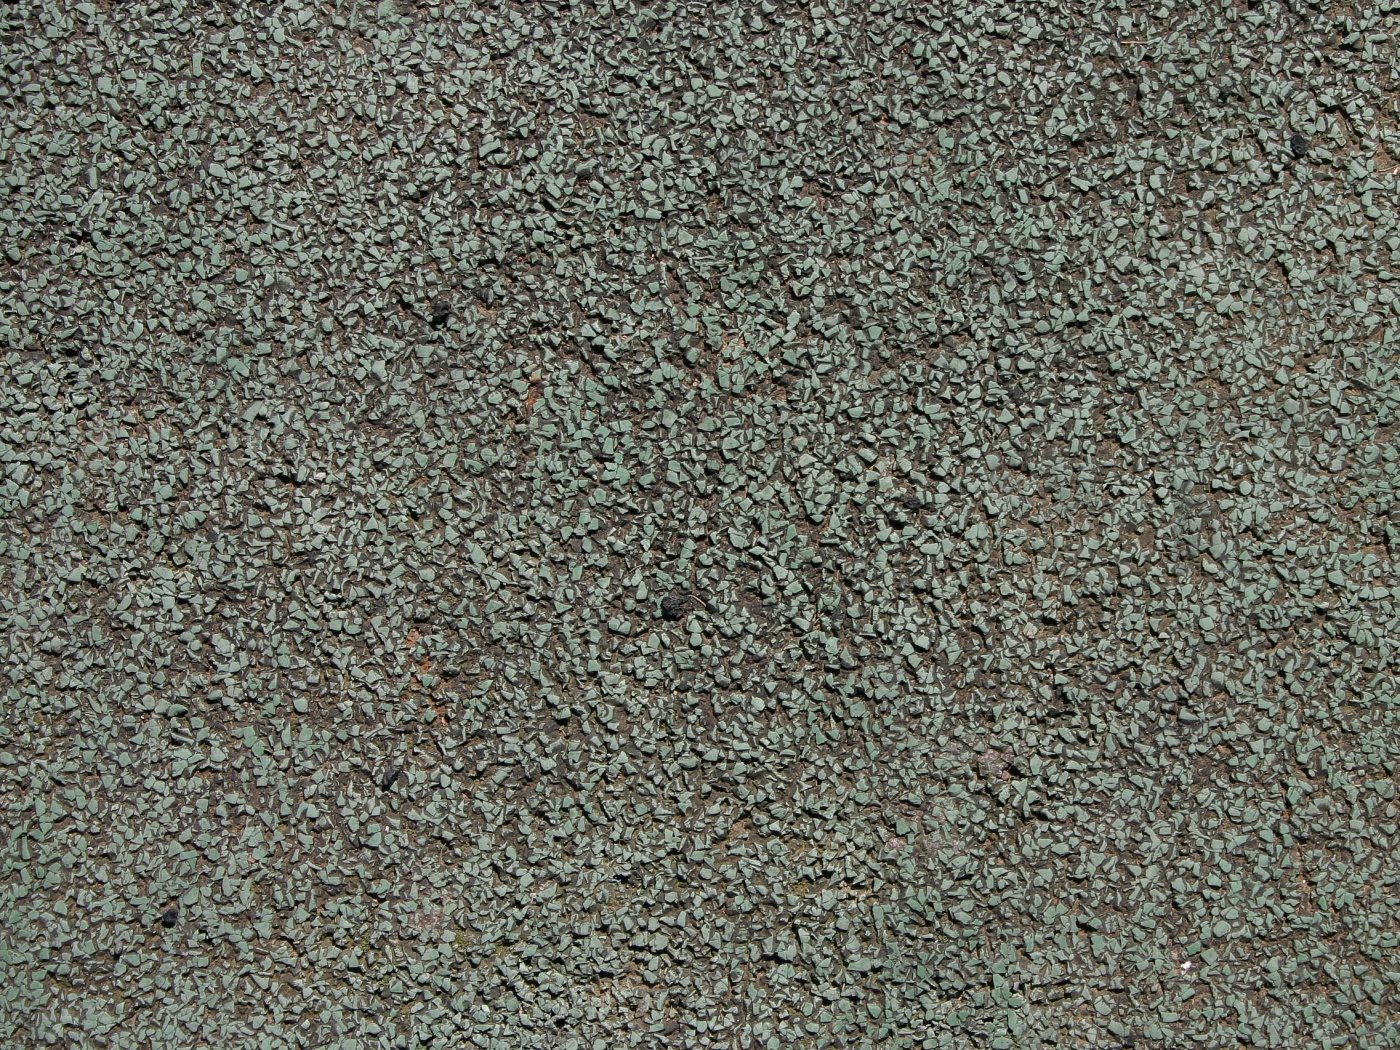 texture stone, download photo, background, stone texture